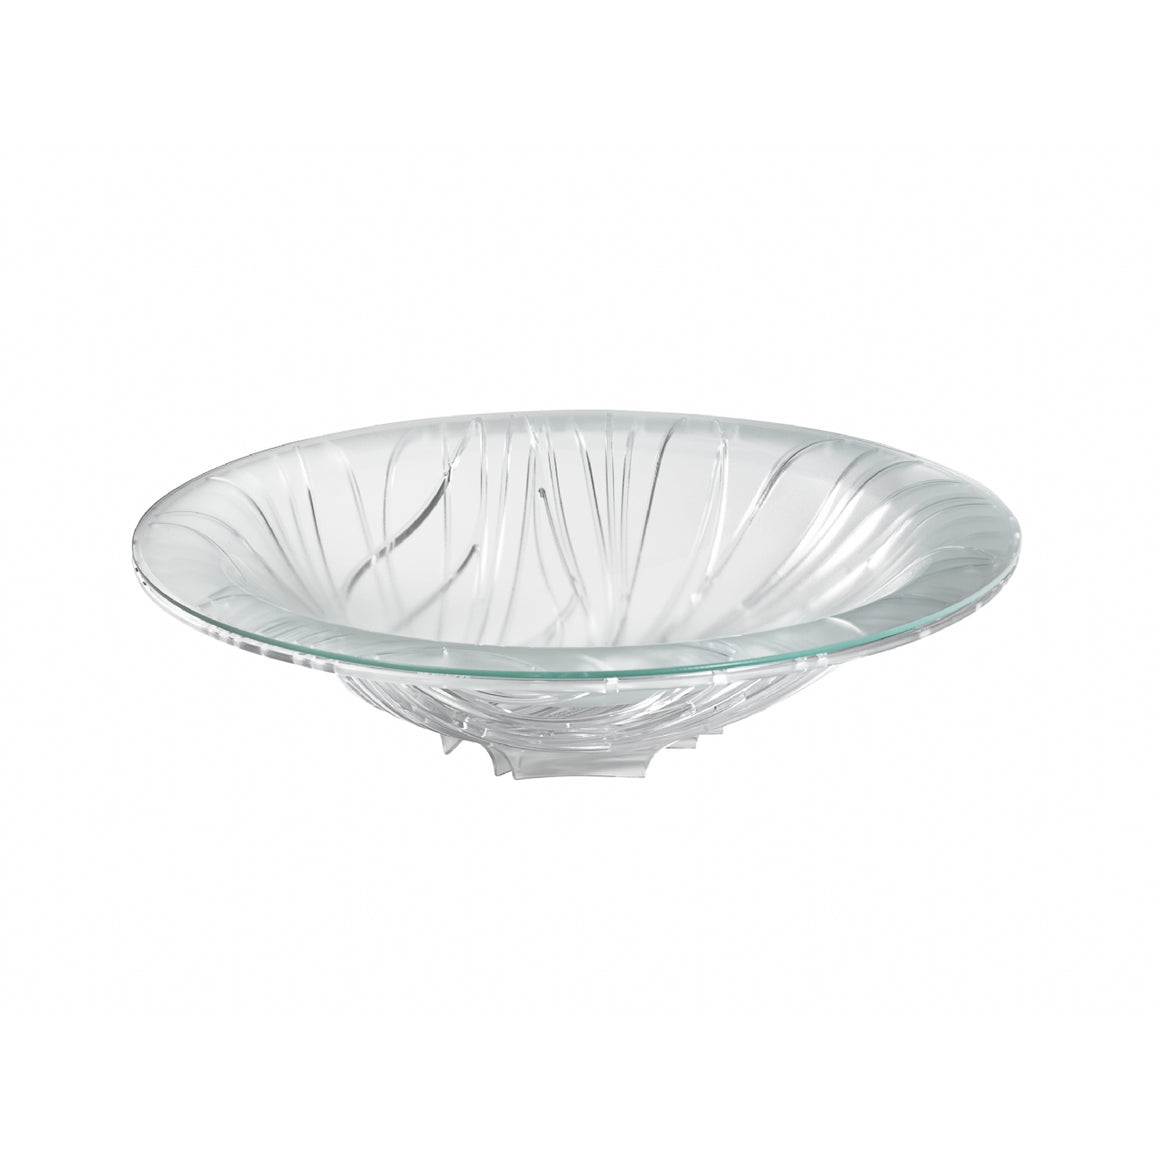 Bugatti - Flora Fruit Bowl With Glass Coupe, Transparent